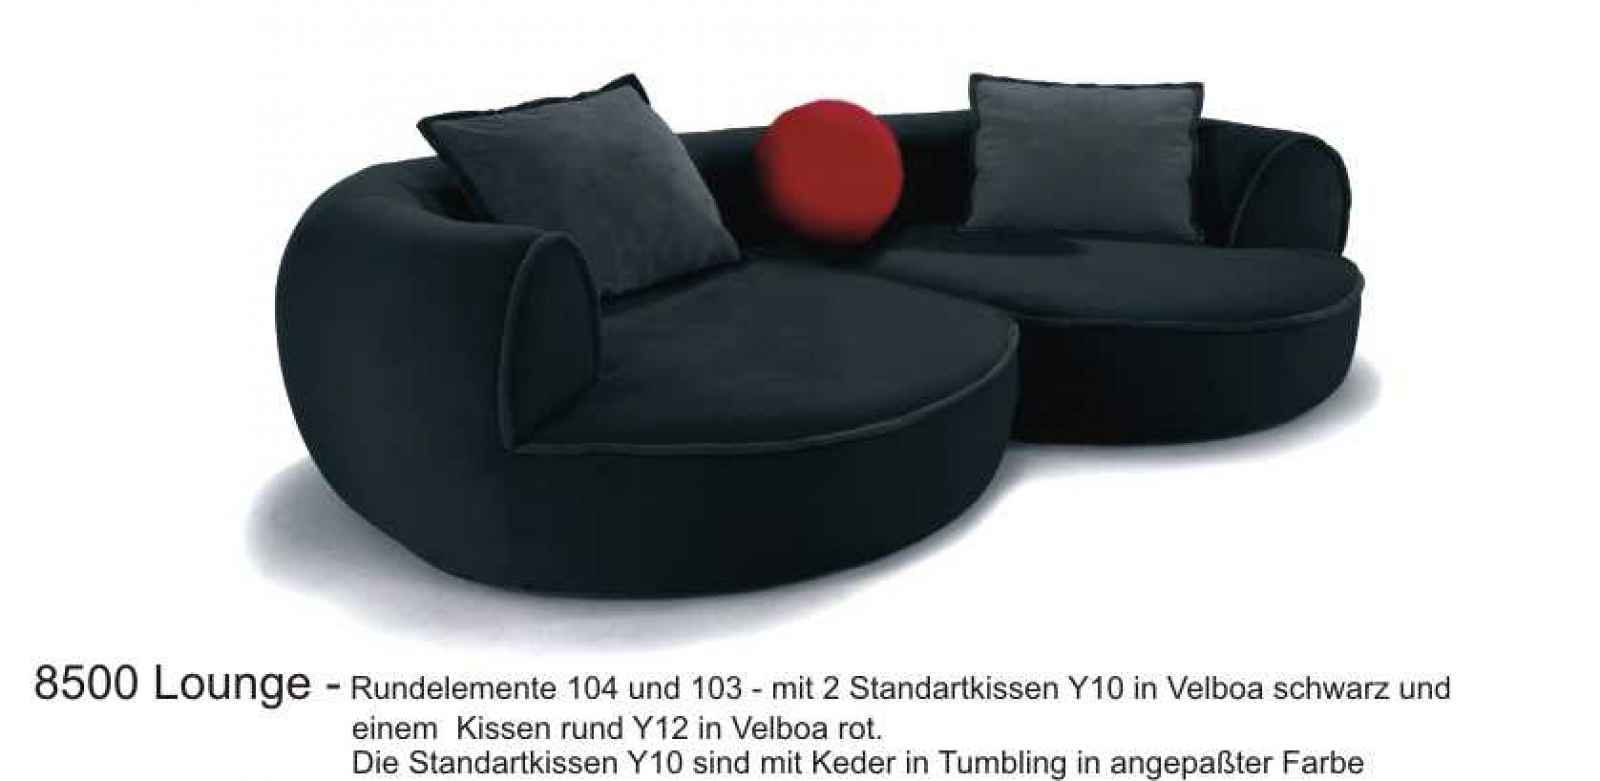 stoffsofas in der yoko home lounge the lounge company. Black Bedroom Furniture Sets. Home Design Ideas